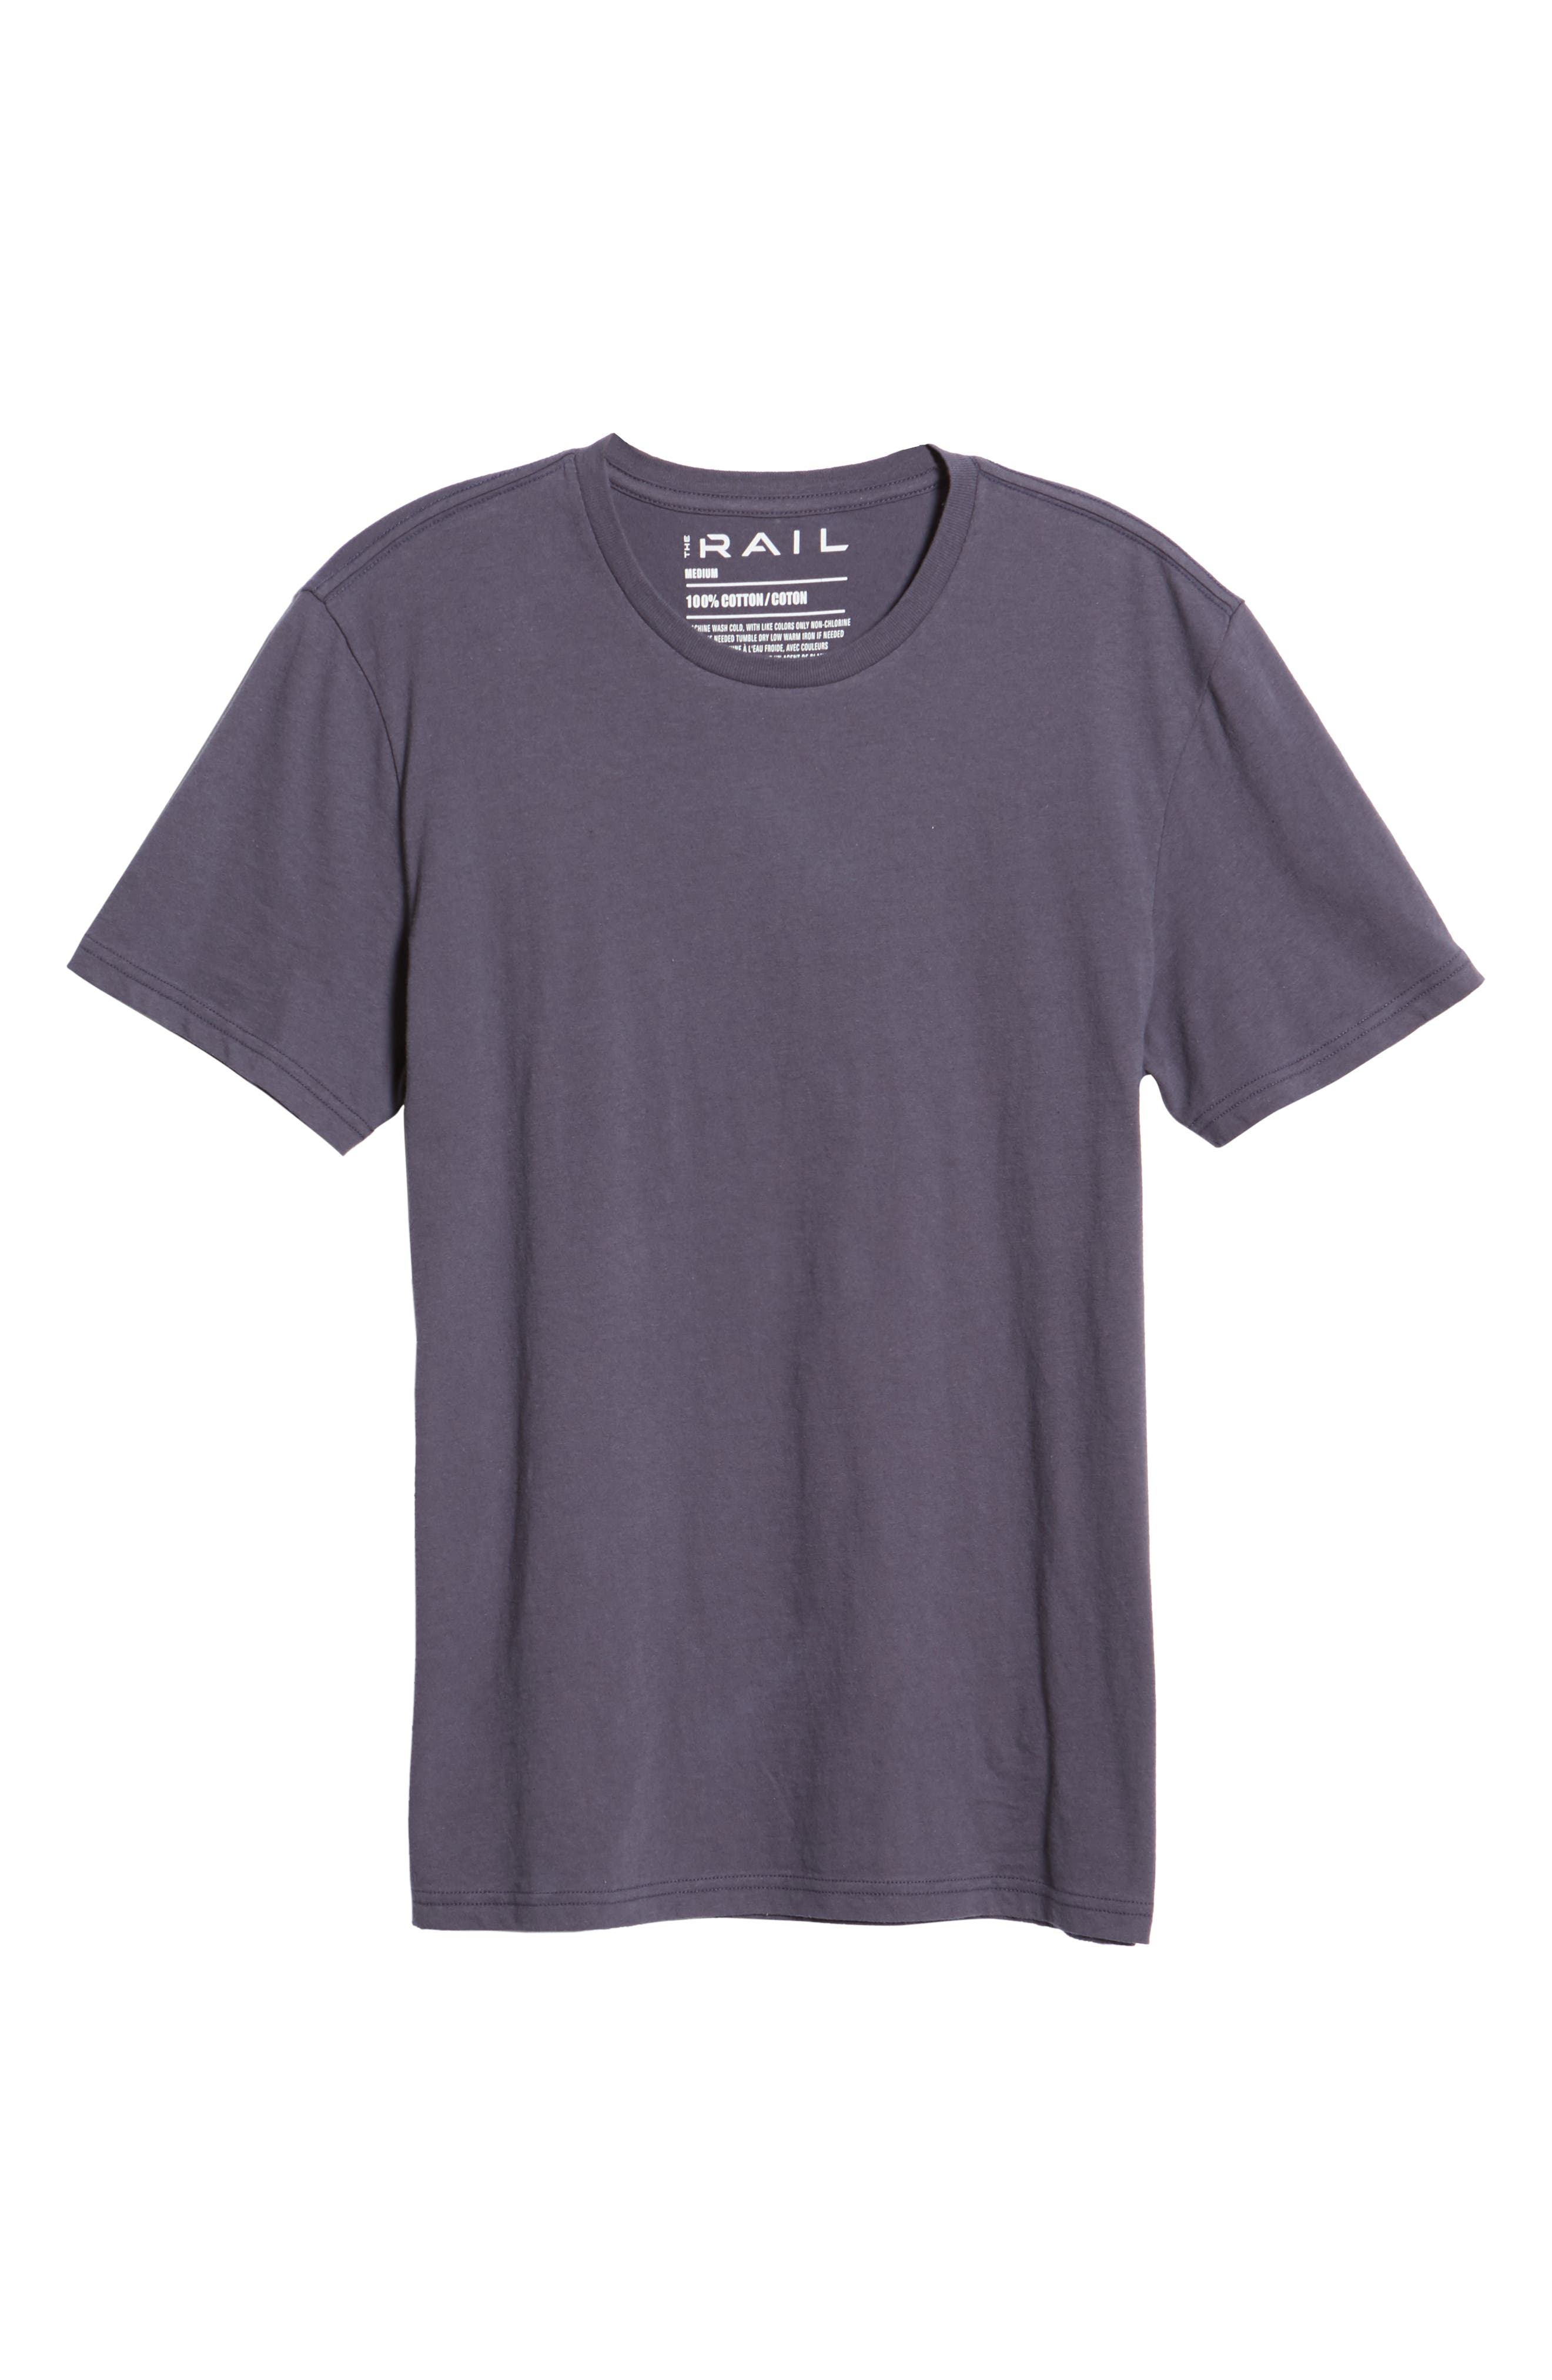 Slim Fit Crewneck T-Shirt,                             Alternate thumbnail 6, color,                             GREY STONE